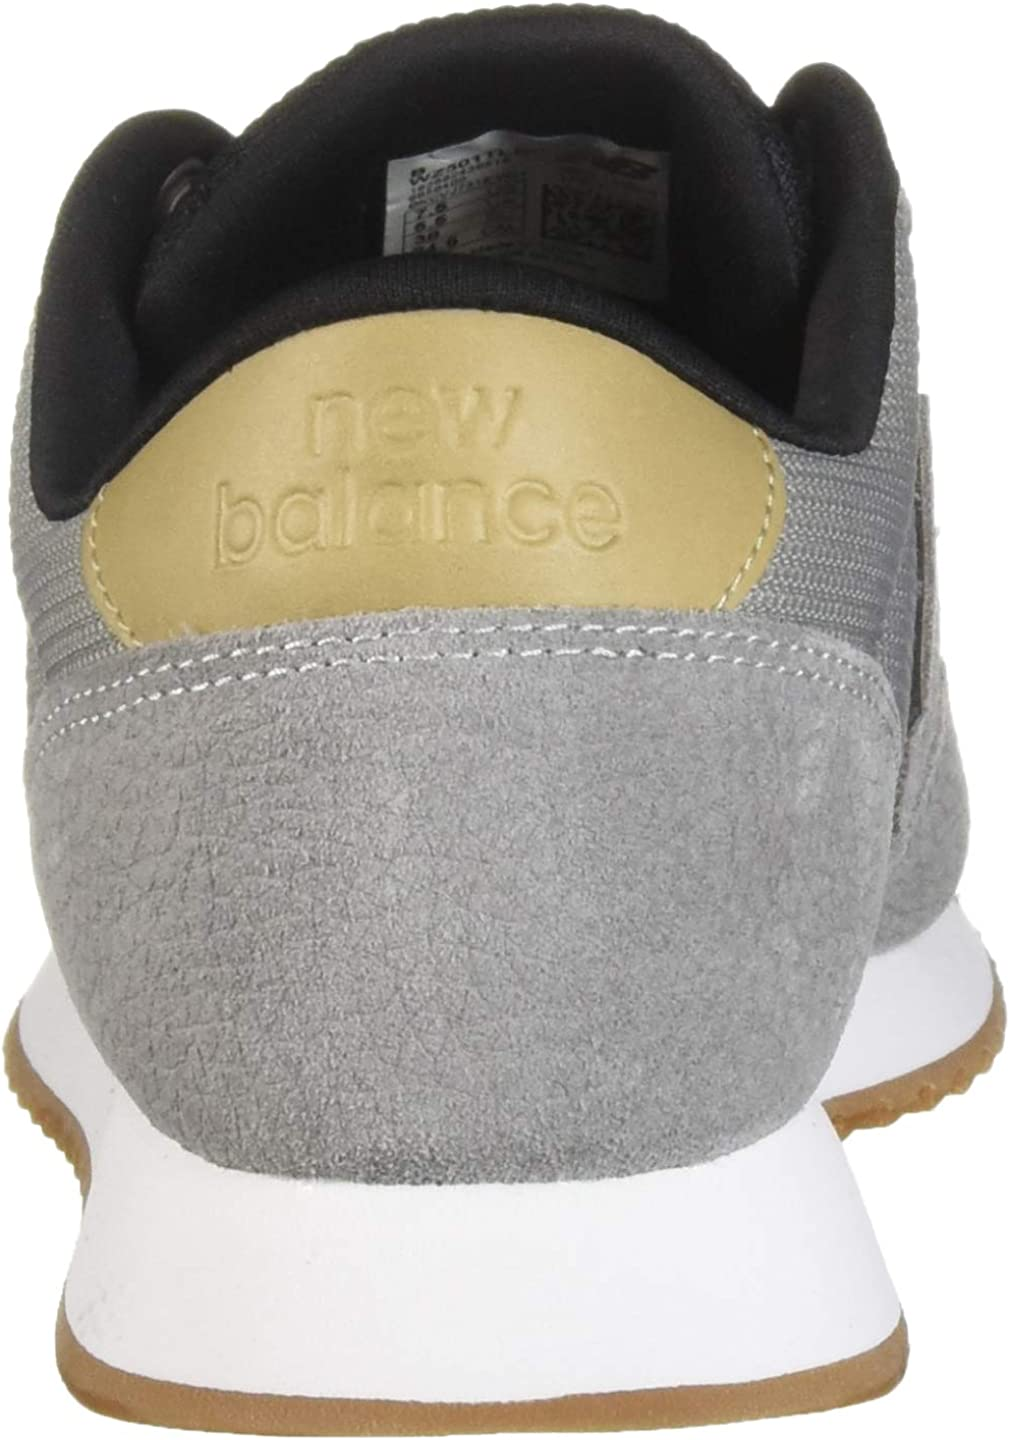 New Balance Damen 501v1 Turnschuh Marblehead/Hemp